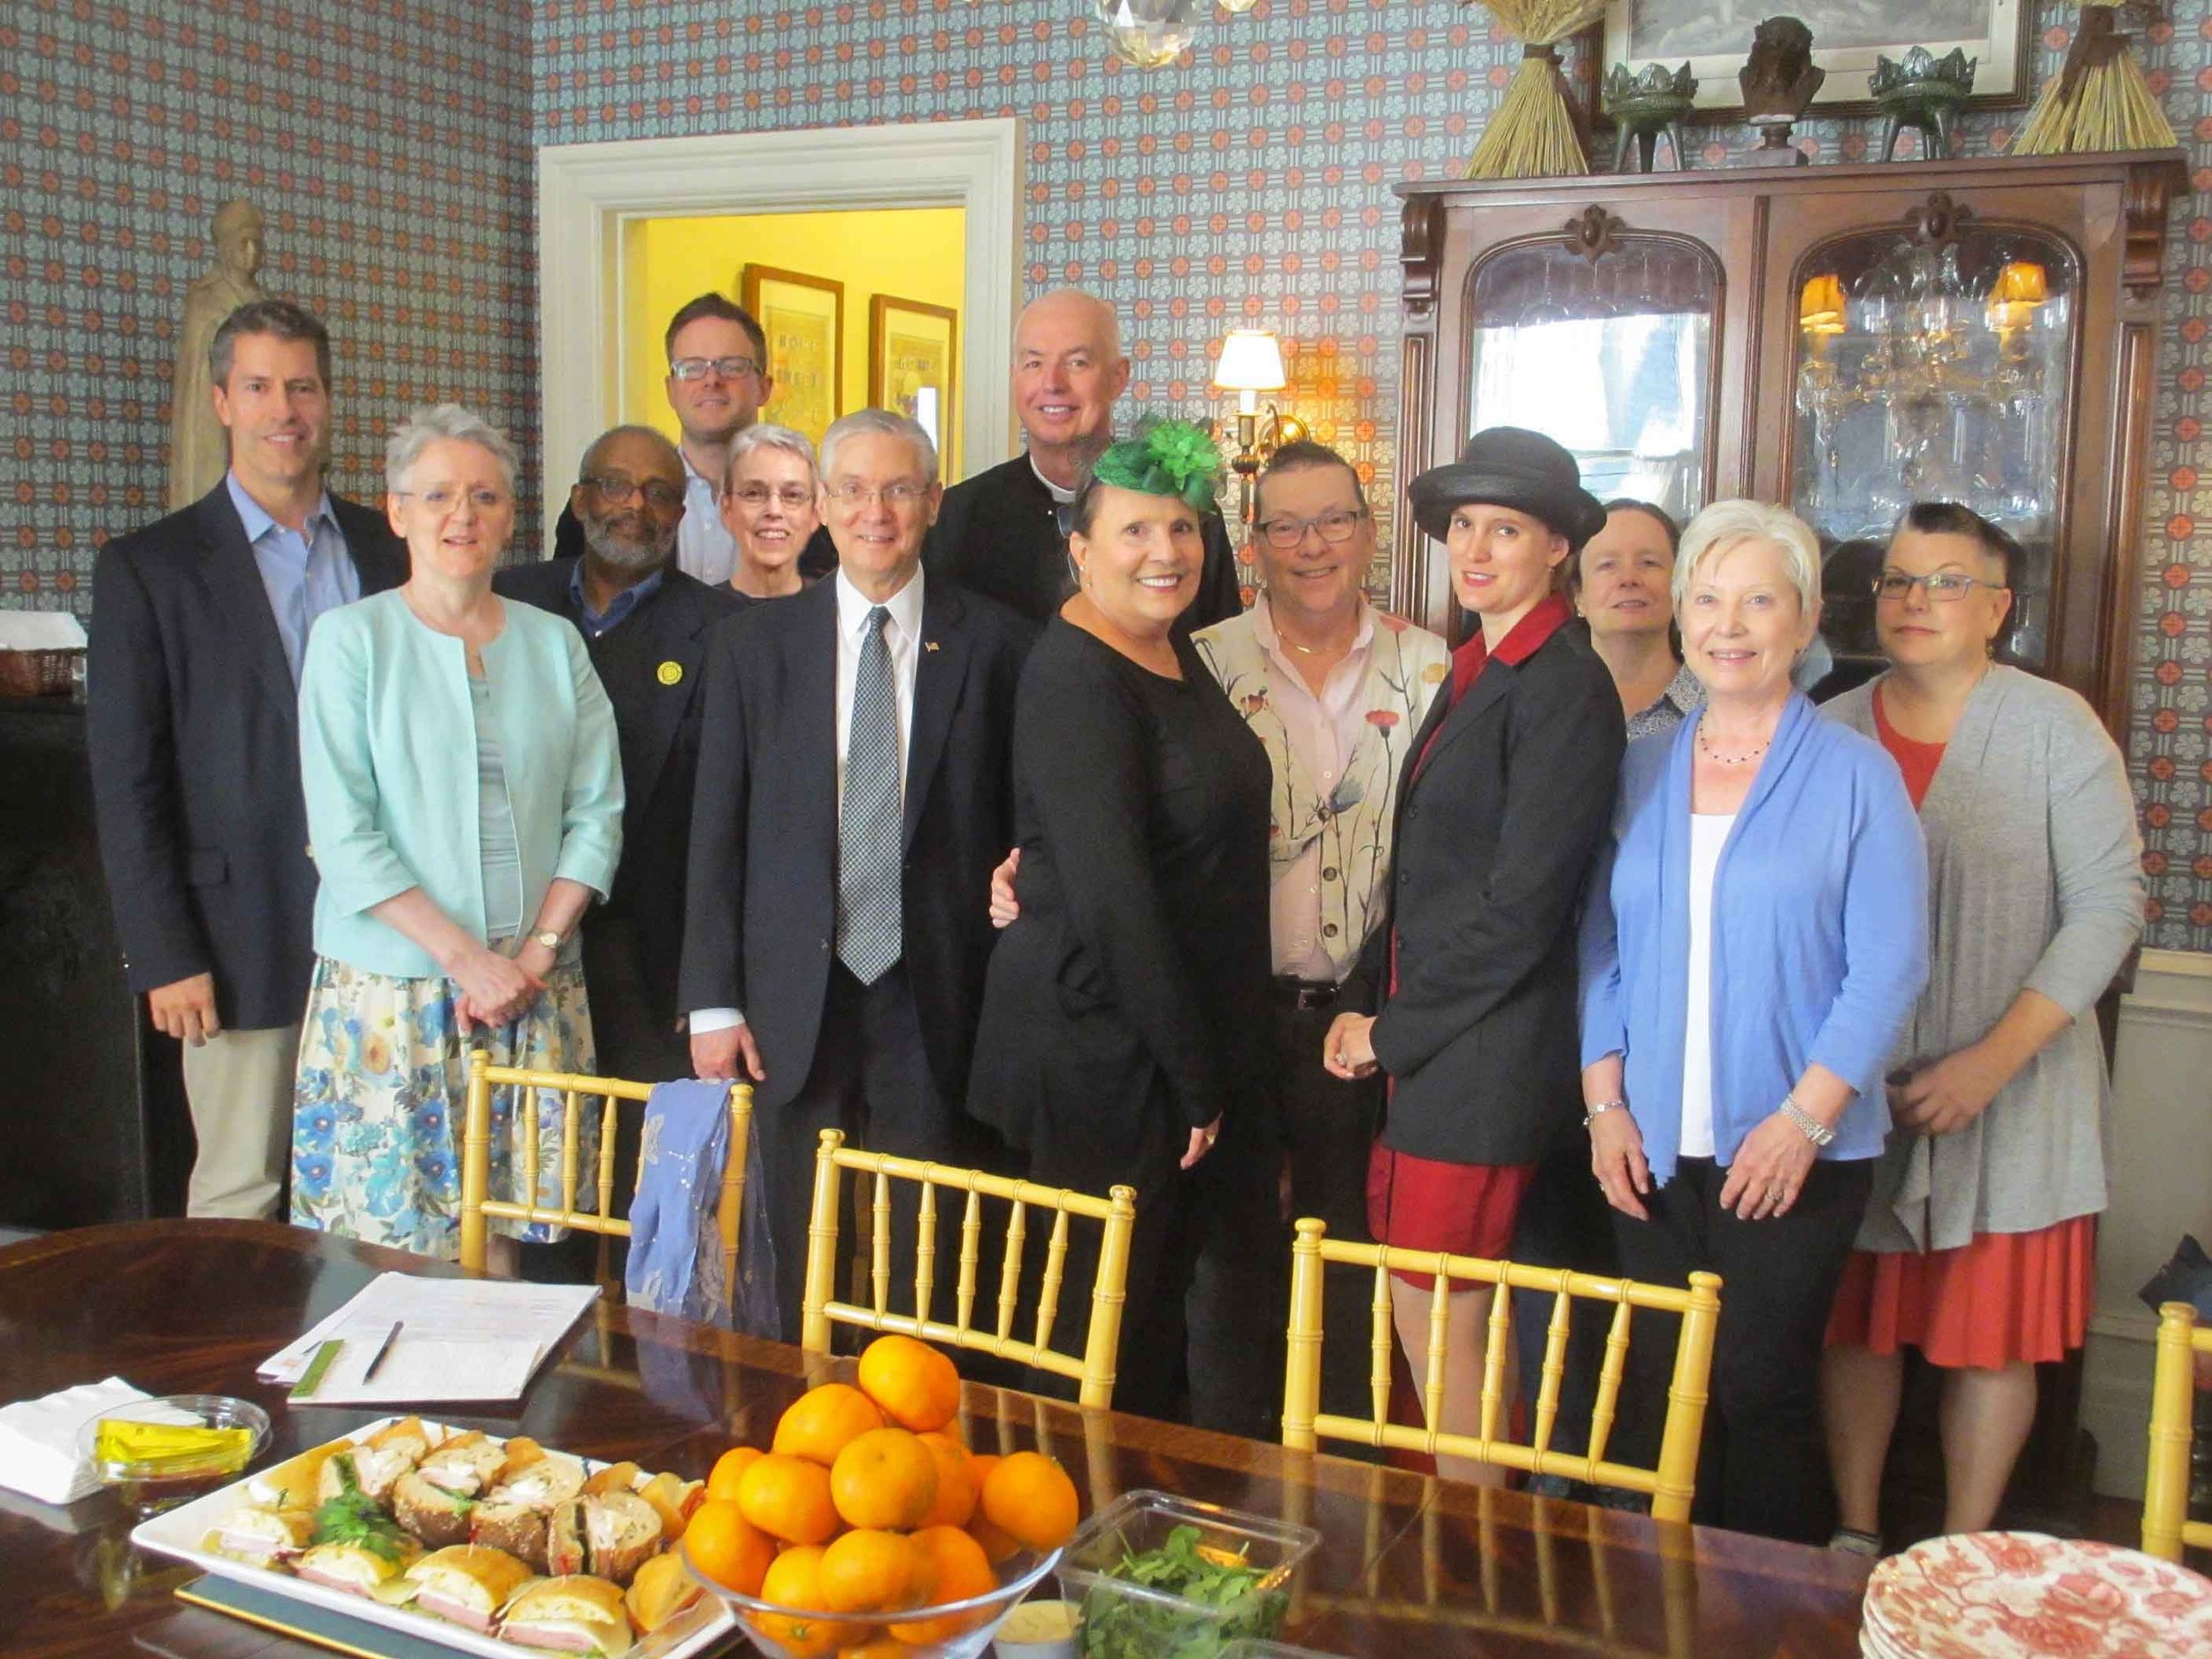 Capital Campaign Team meeting in the rectory on Sunday, September 10, after Solemn Mass.